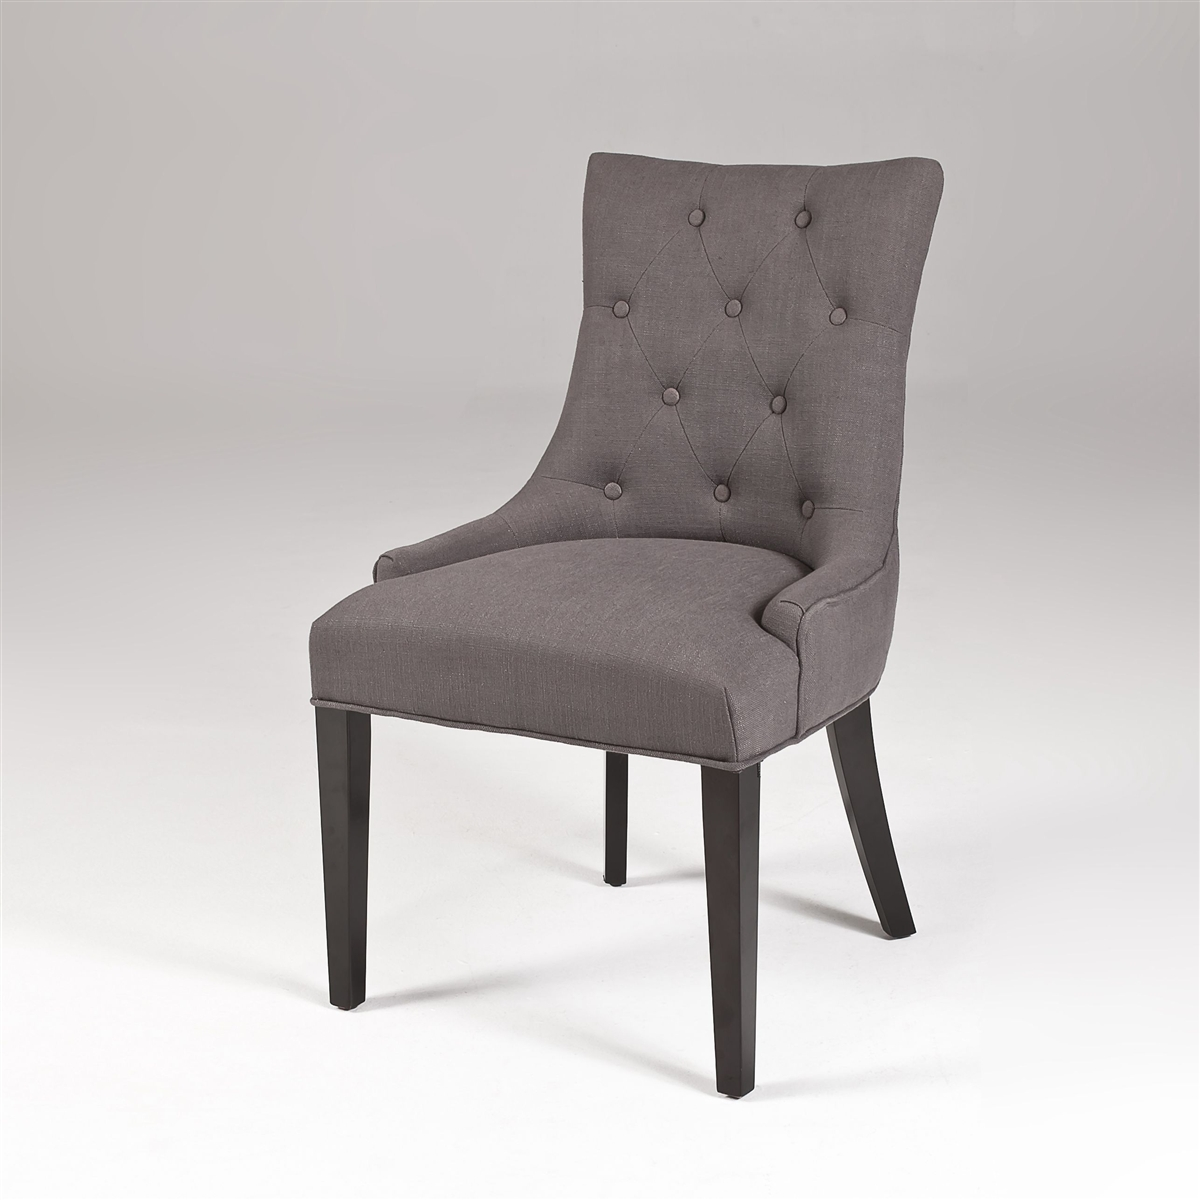 modern dining chairs for sale. seriena gray linen dining chair with button-tufting and barrel curved back, modern chairs for sale